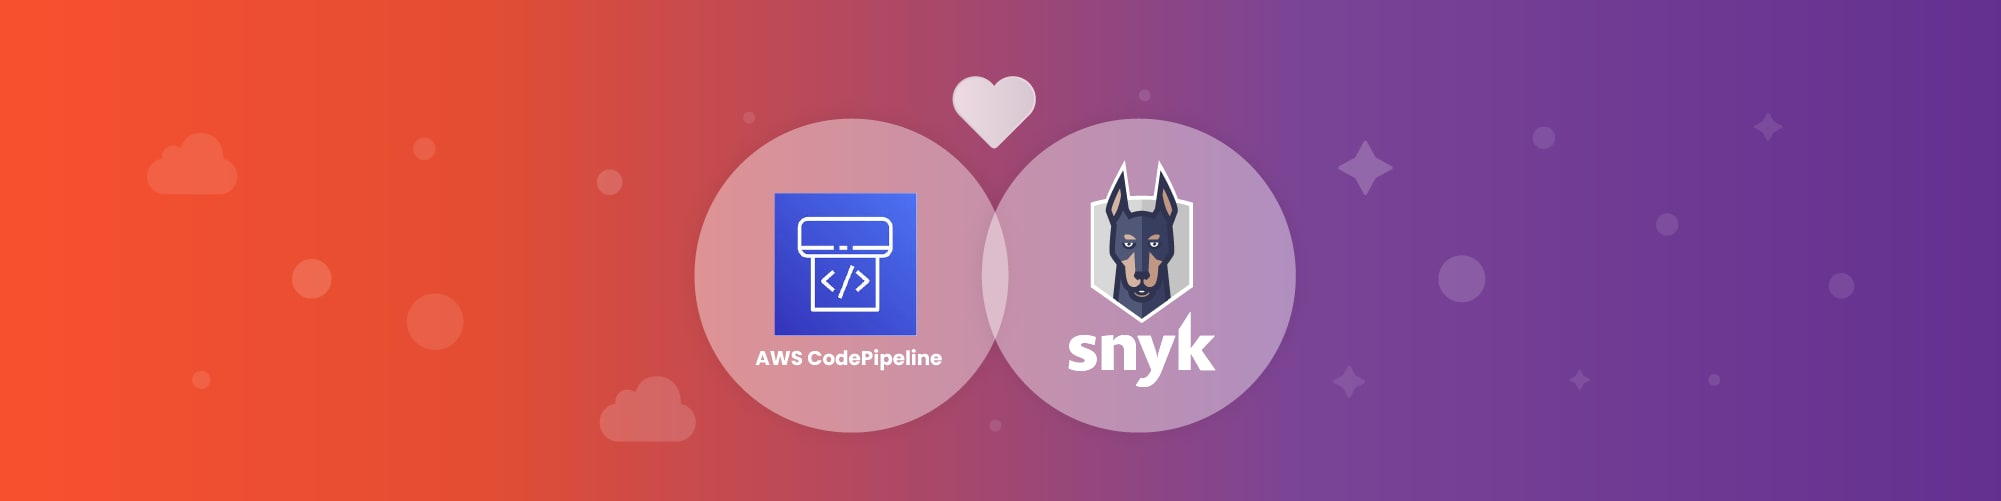 Automatically scan for vulnerabilities within AWS CodePipeline using Snyk